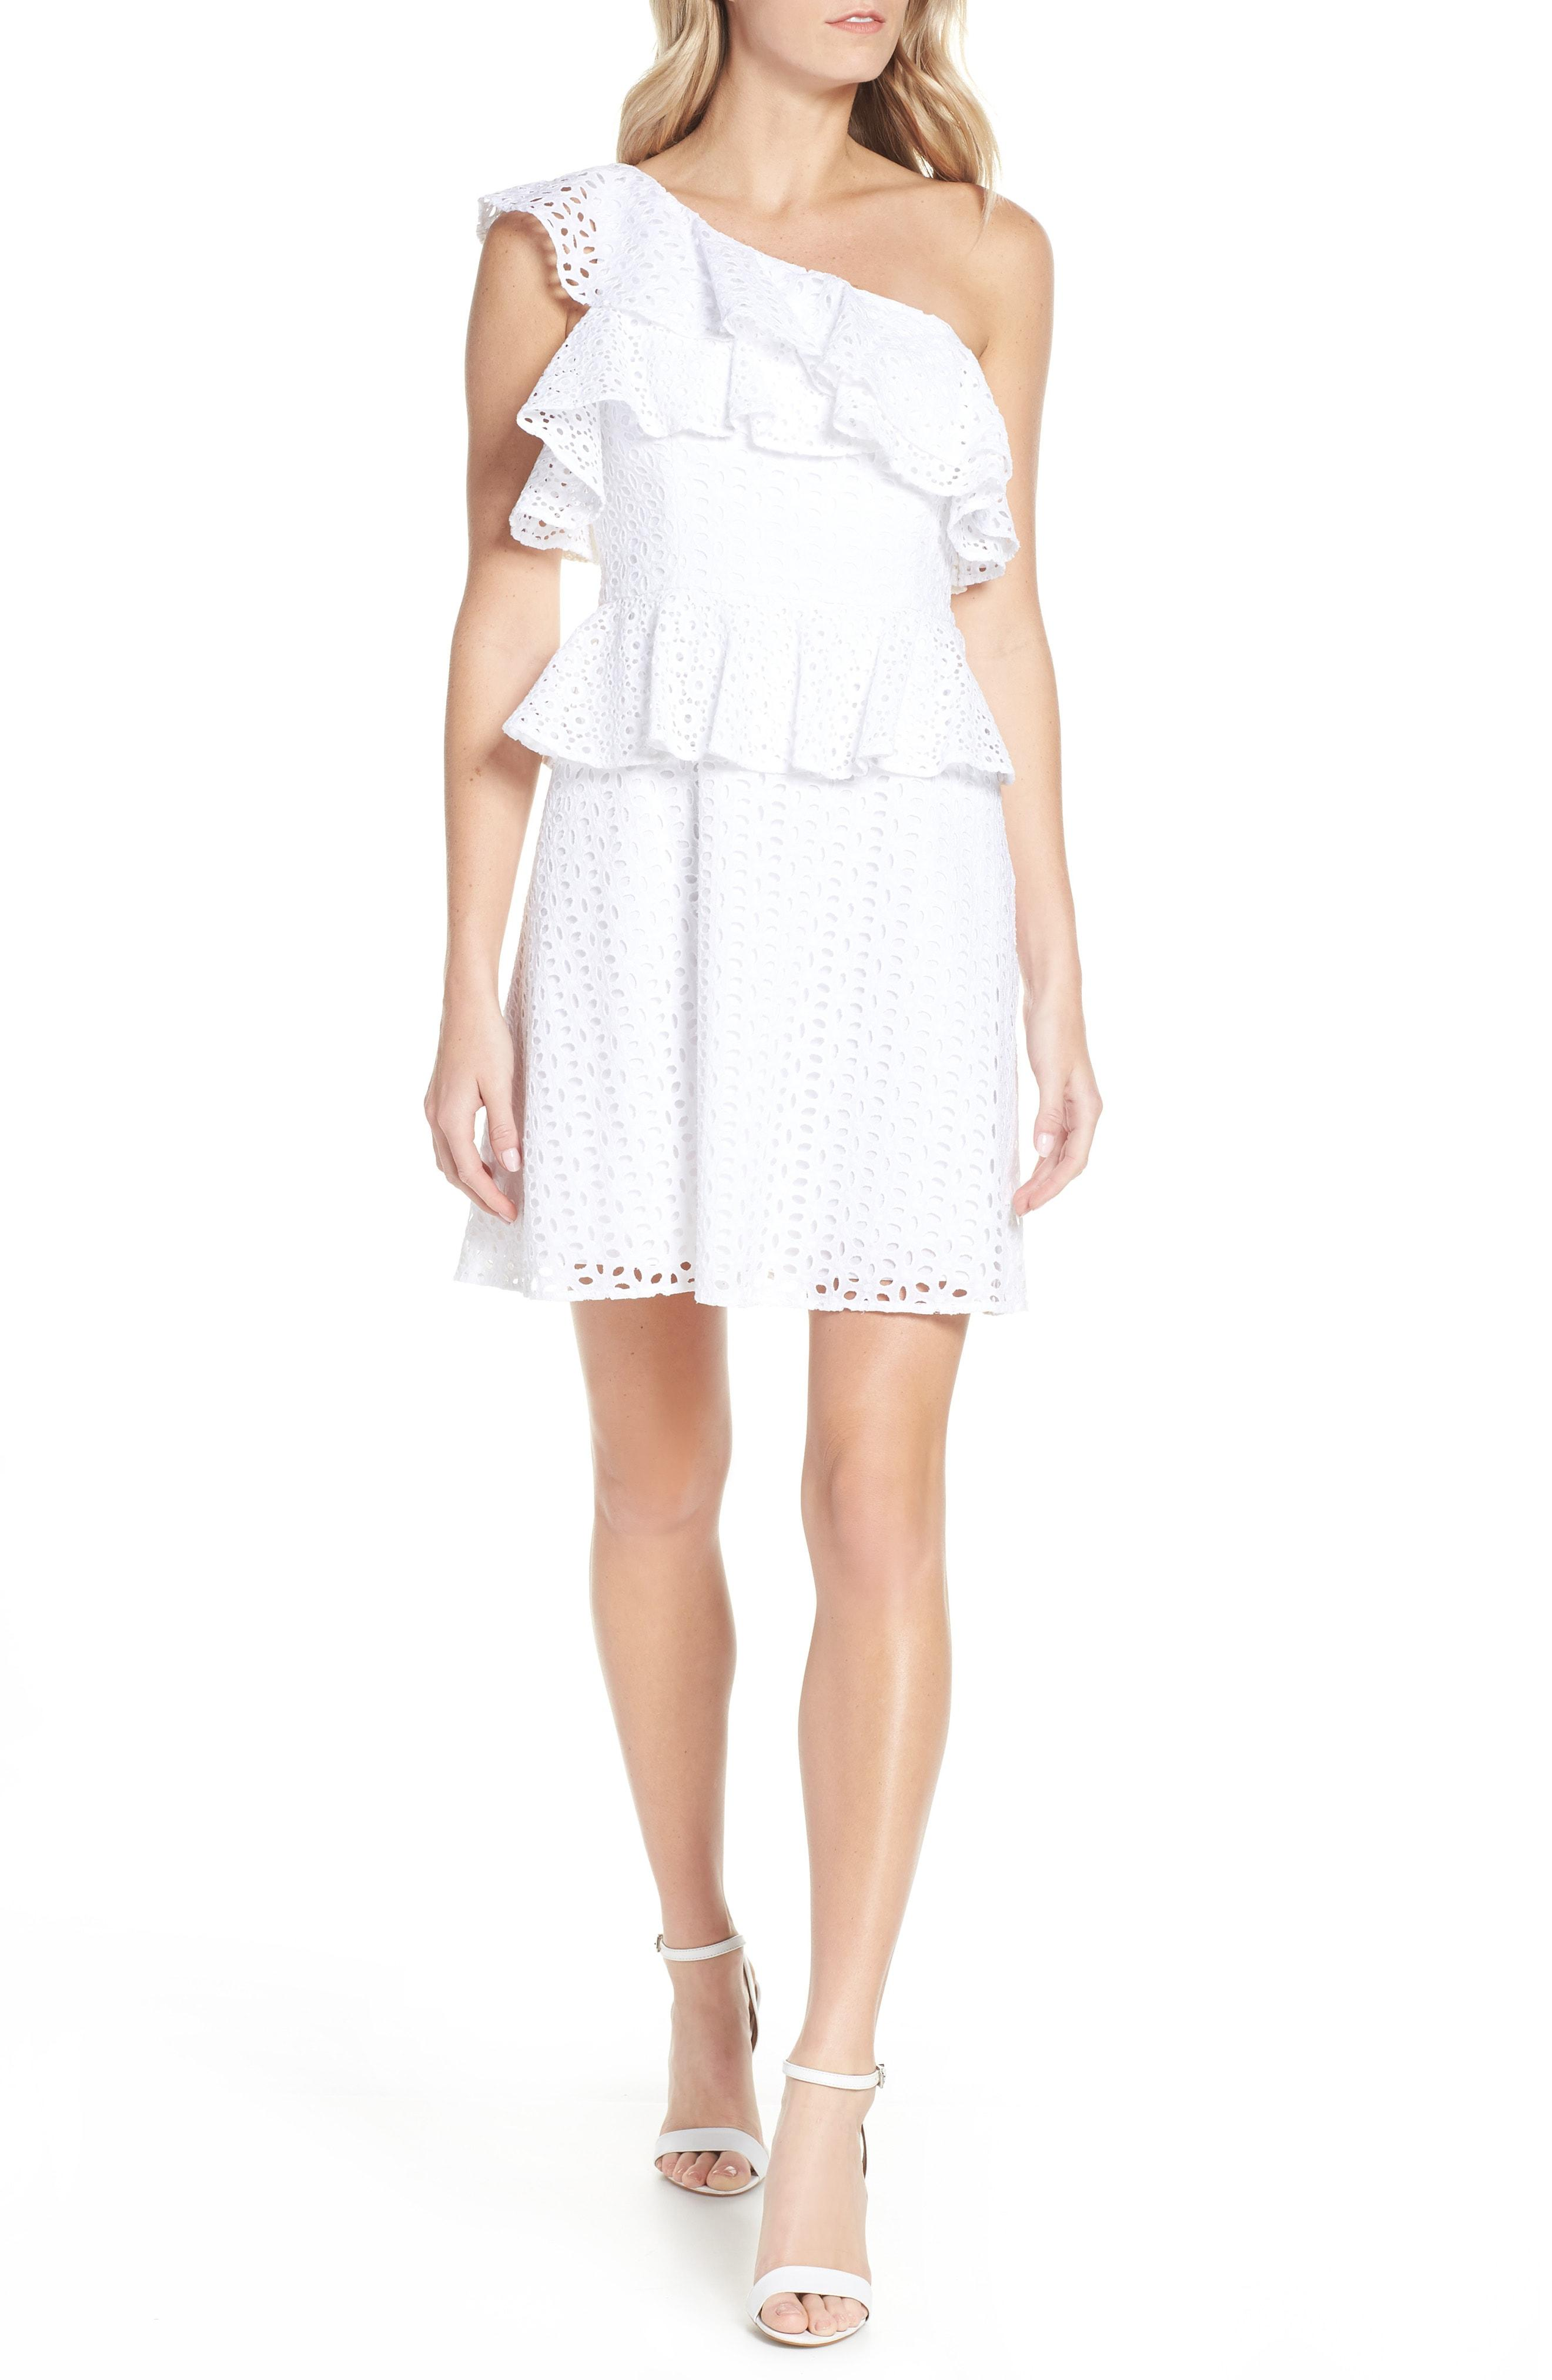 0b37678800 Lilly Pulitzer. Women s White Lilly Pulitzer Josey Eyelet One-shoulder Dress